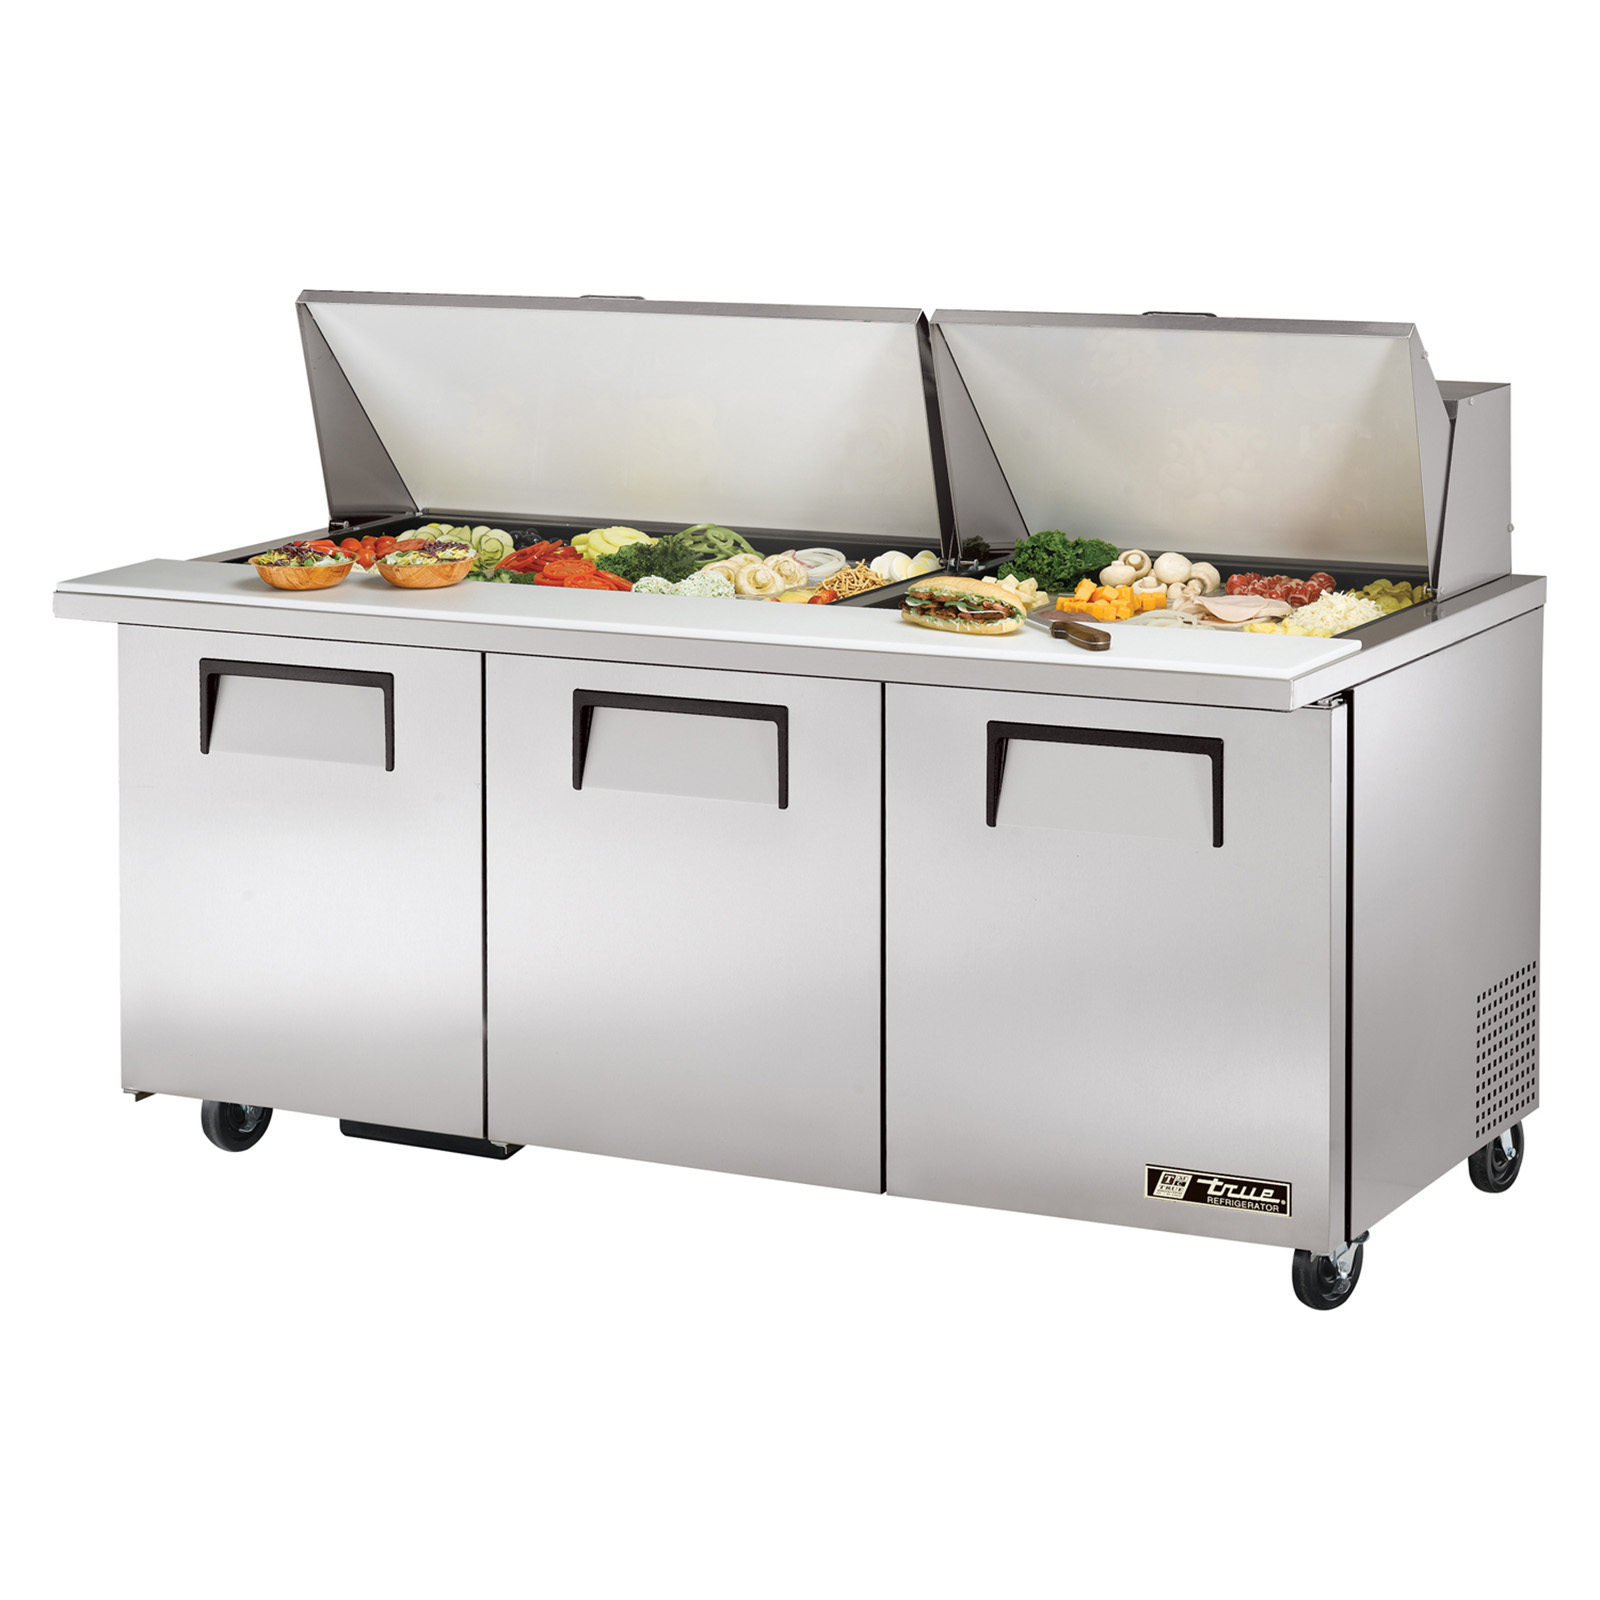 TSSU-72-30M-B-ST True - Mega Top Sandwich/Salad Unit (30) 1/6 size (4